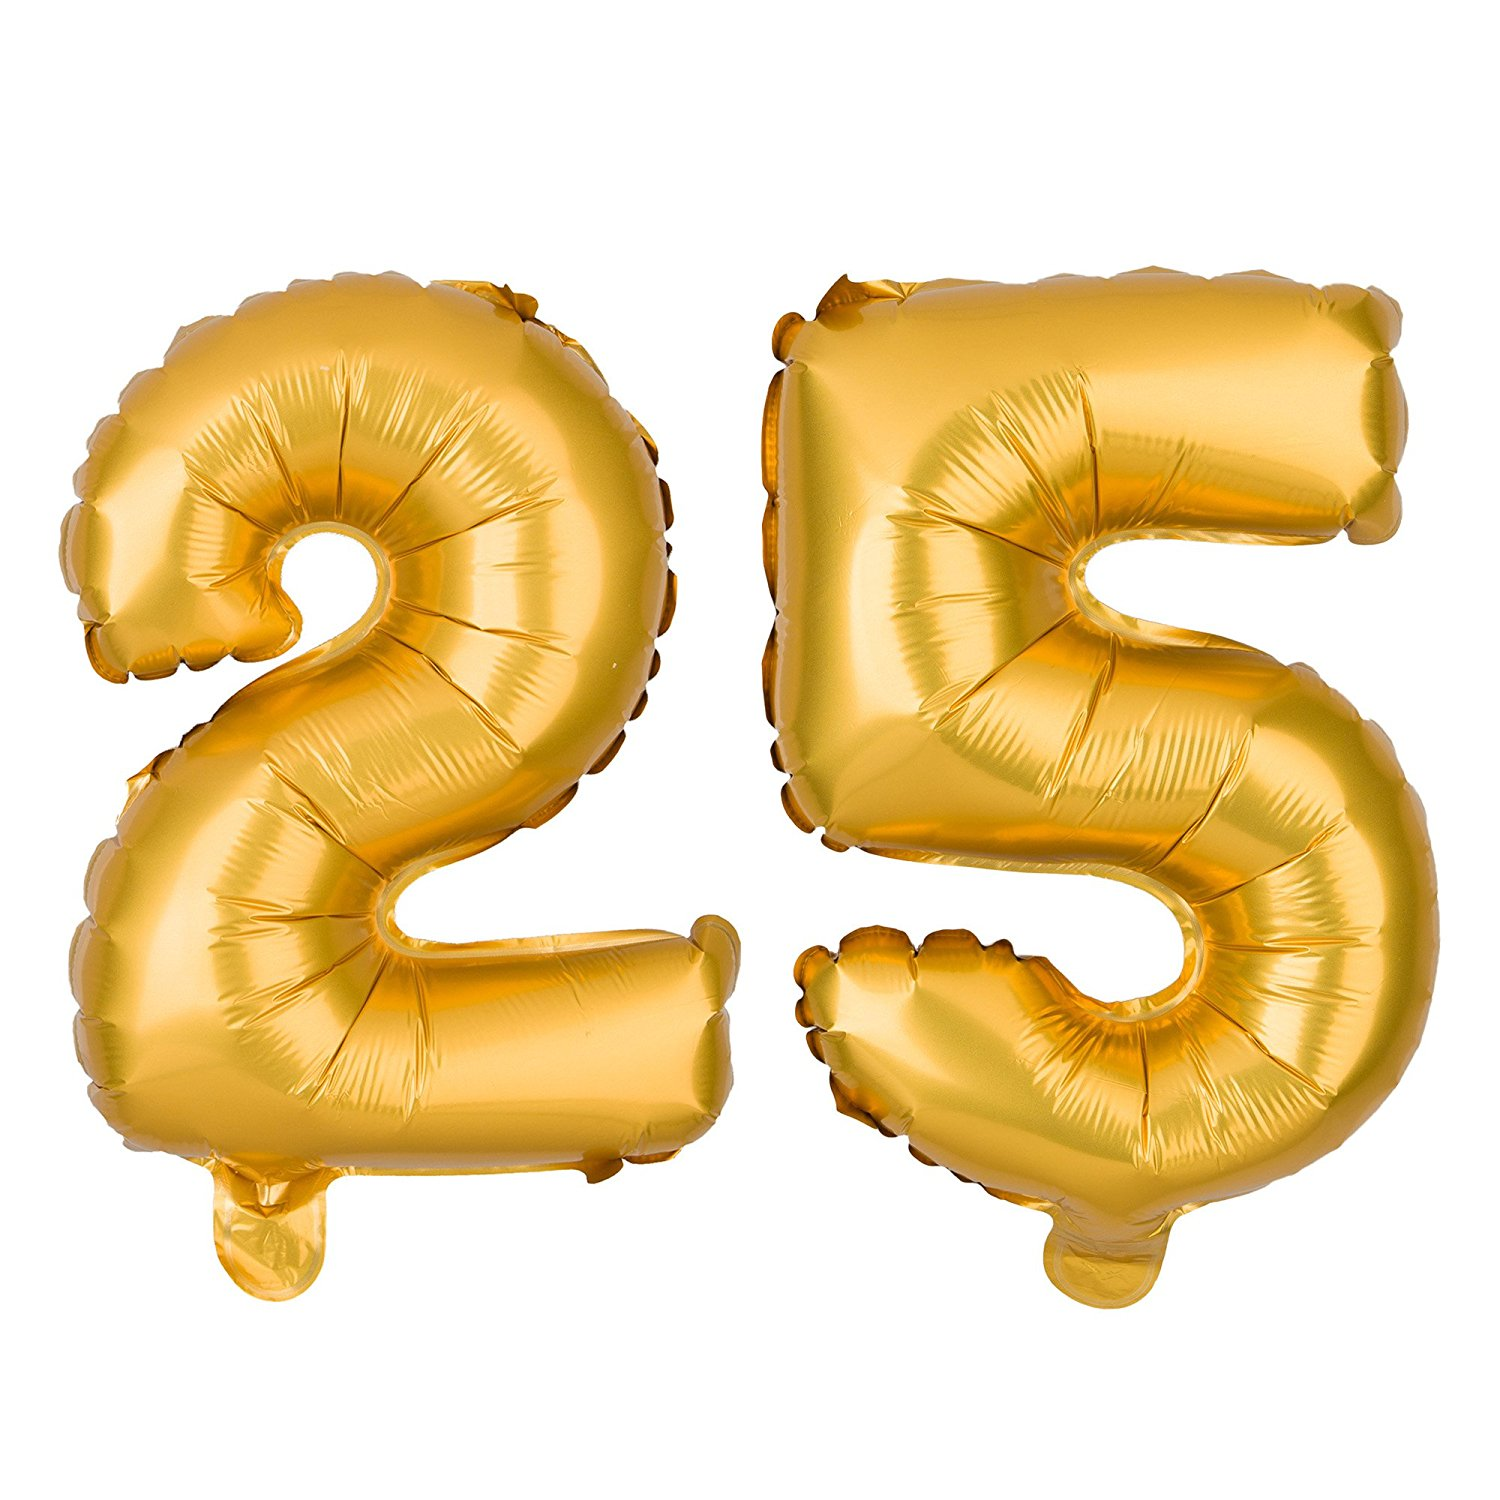 Non-Floating 25 Number Balloons 25th Birthday Party Supplies Silver Decorations Small 13 Inch (Silver)